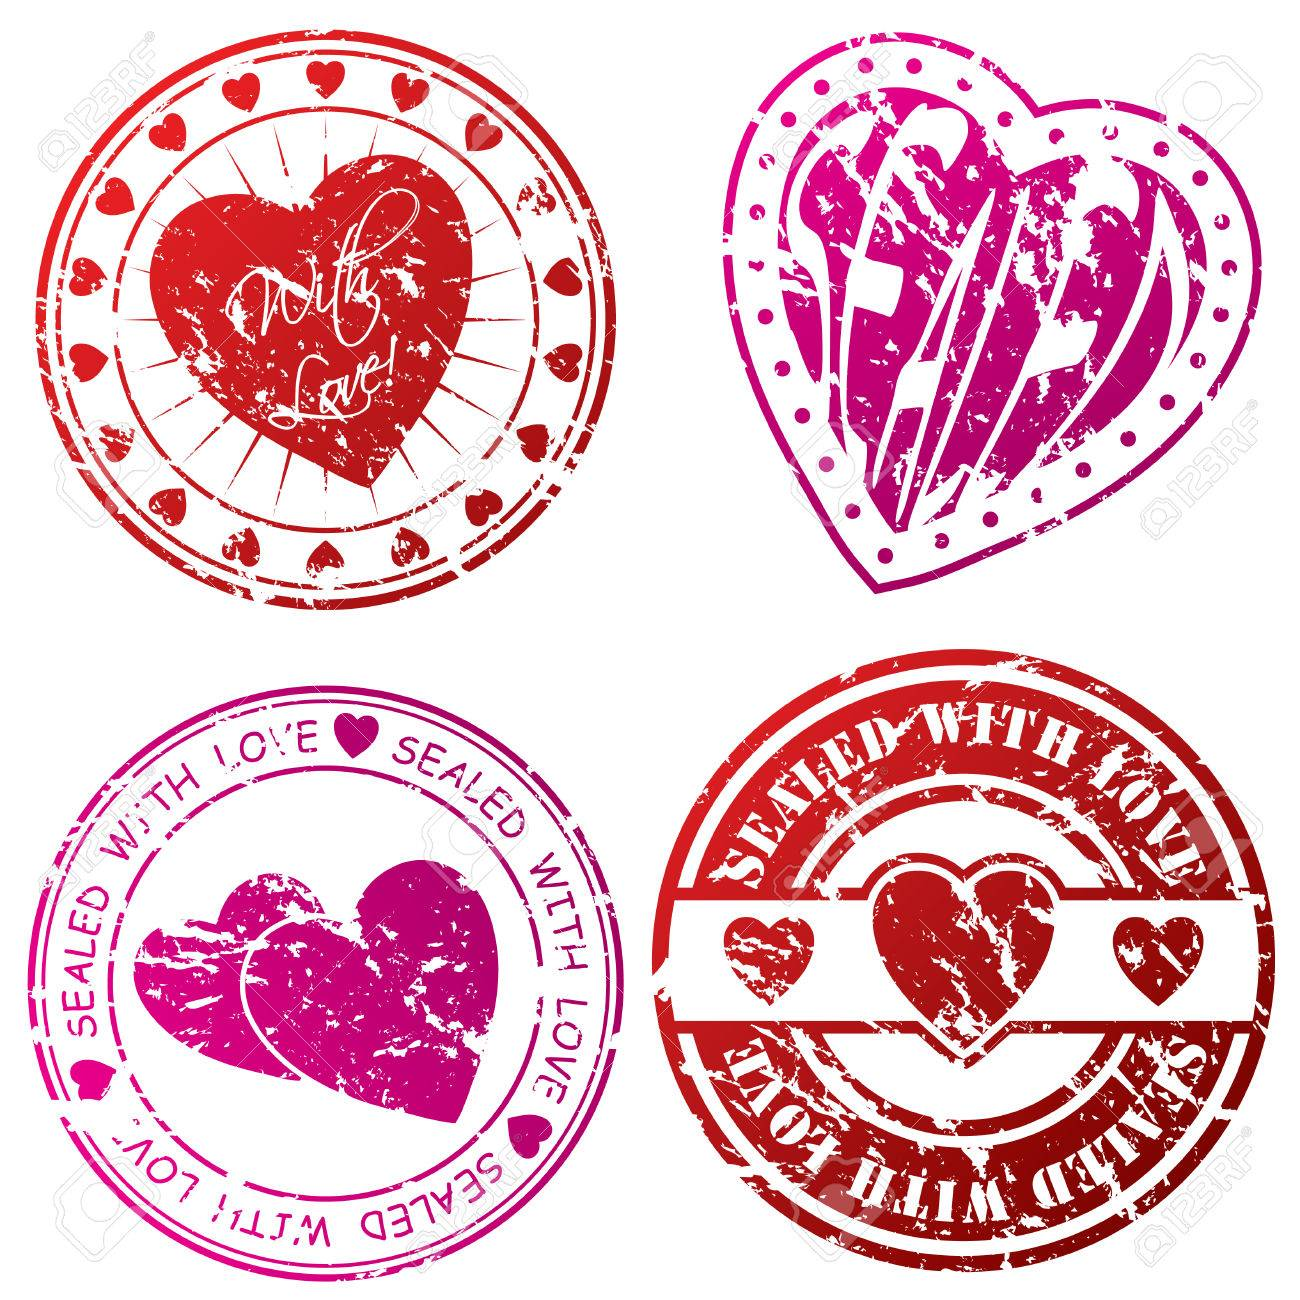 love stamps for love